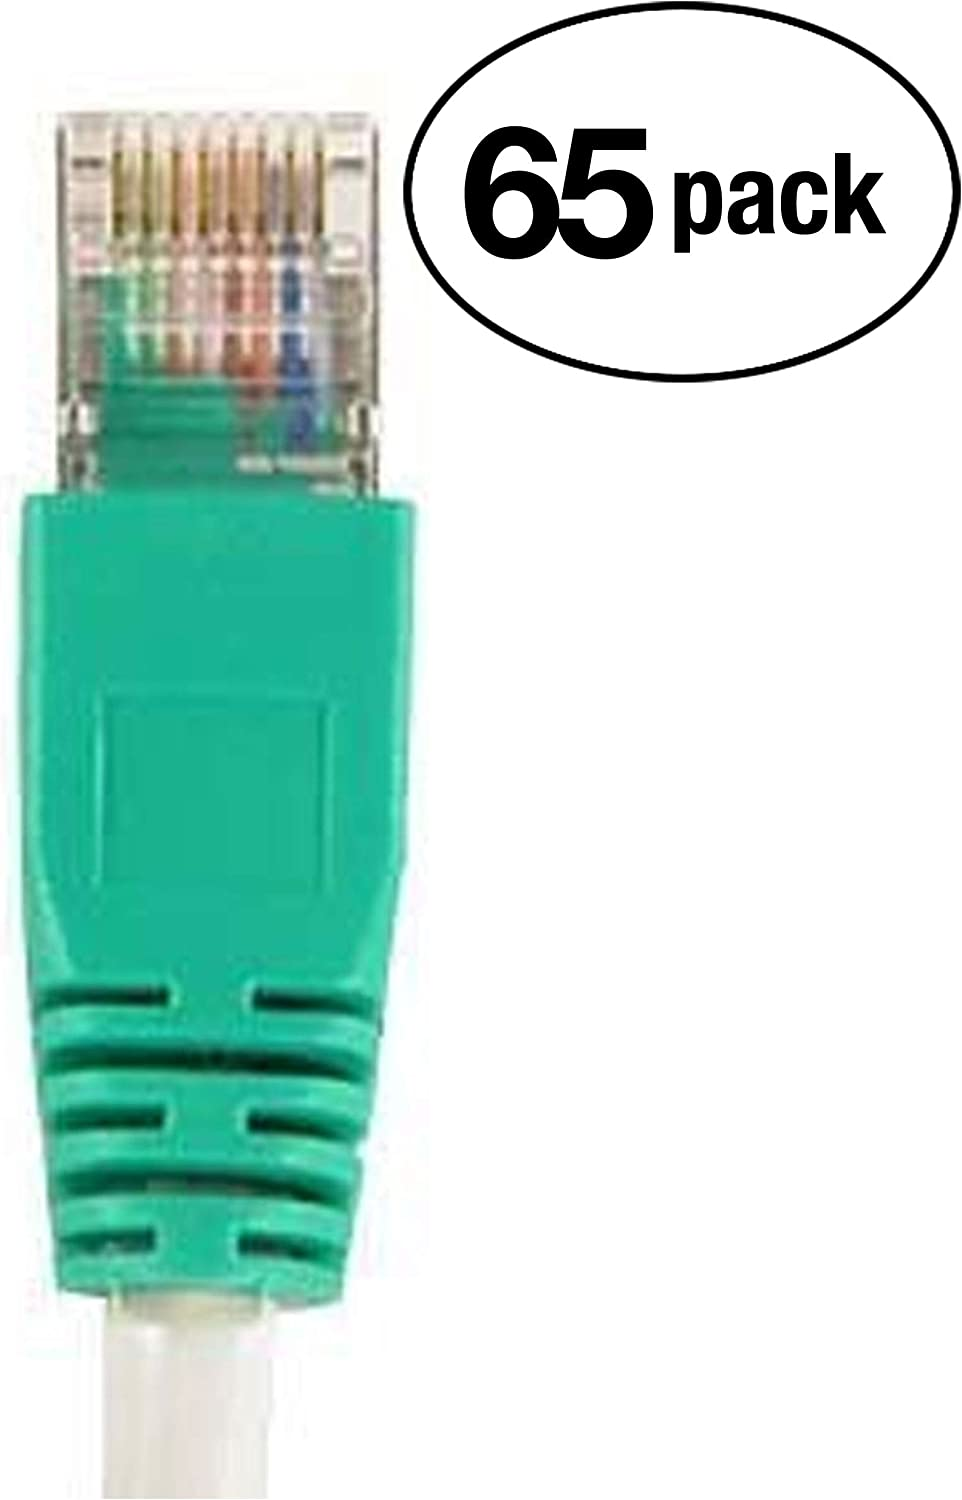 Professional Series InstallerParts 250 Pack Gray w//Green End Ethernet Cable CAT5E Cable UTP Crossover 3 FT 1Gigabit//Sec Network//Internet Cable 350MHZ